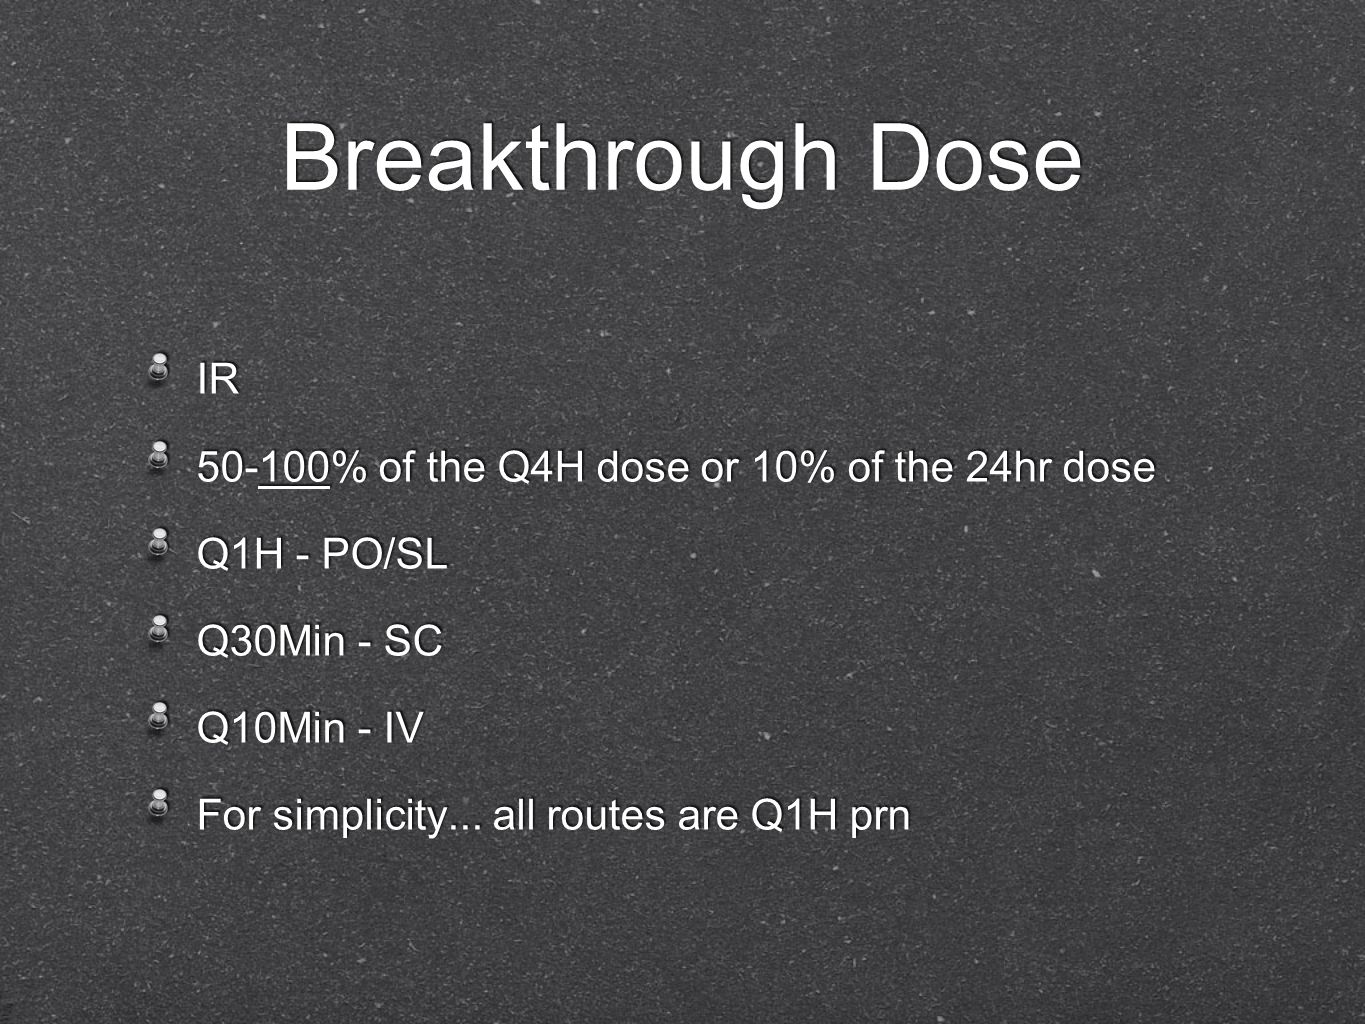 Breakthrough Dose IR 50-100% of the Q4H dose or 10% of the 24hr dose